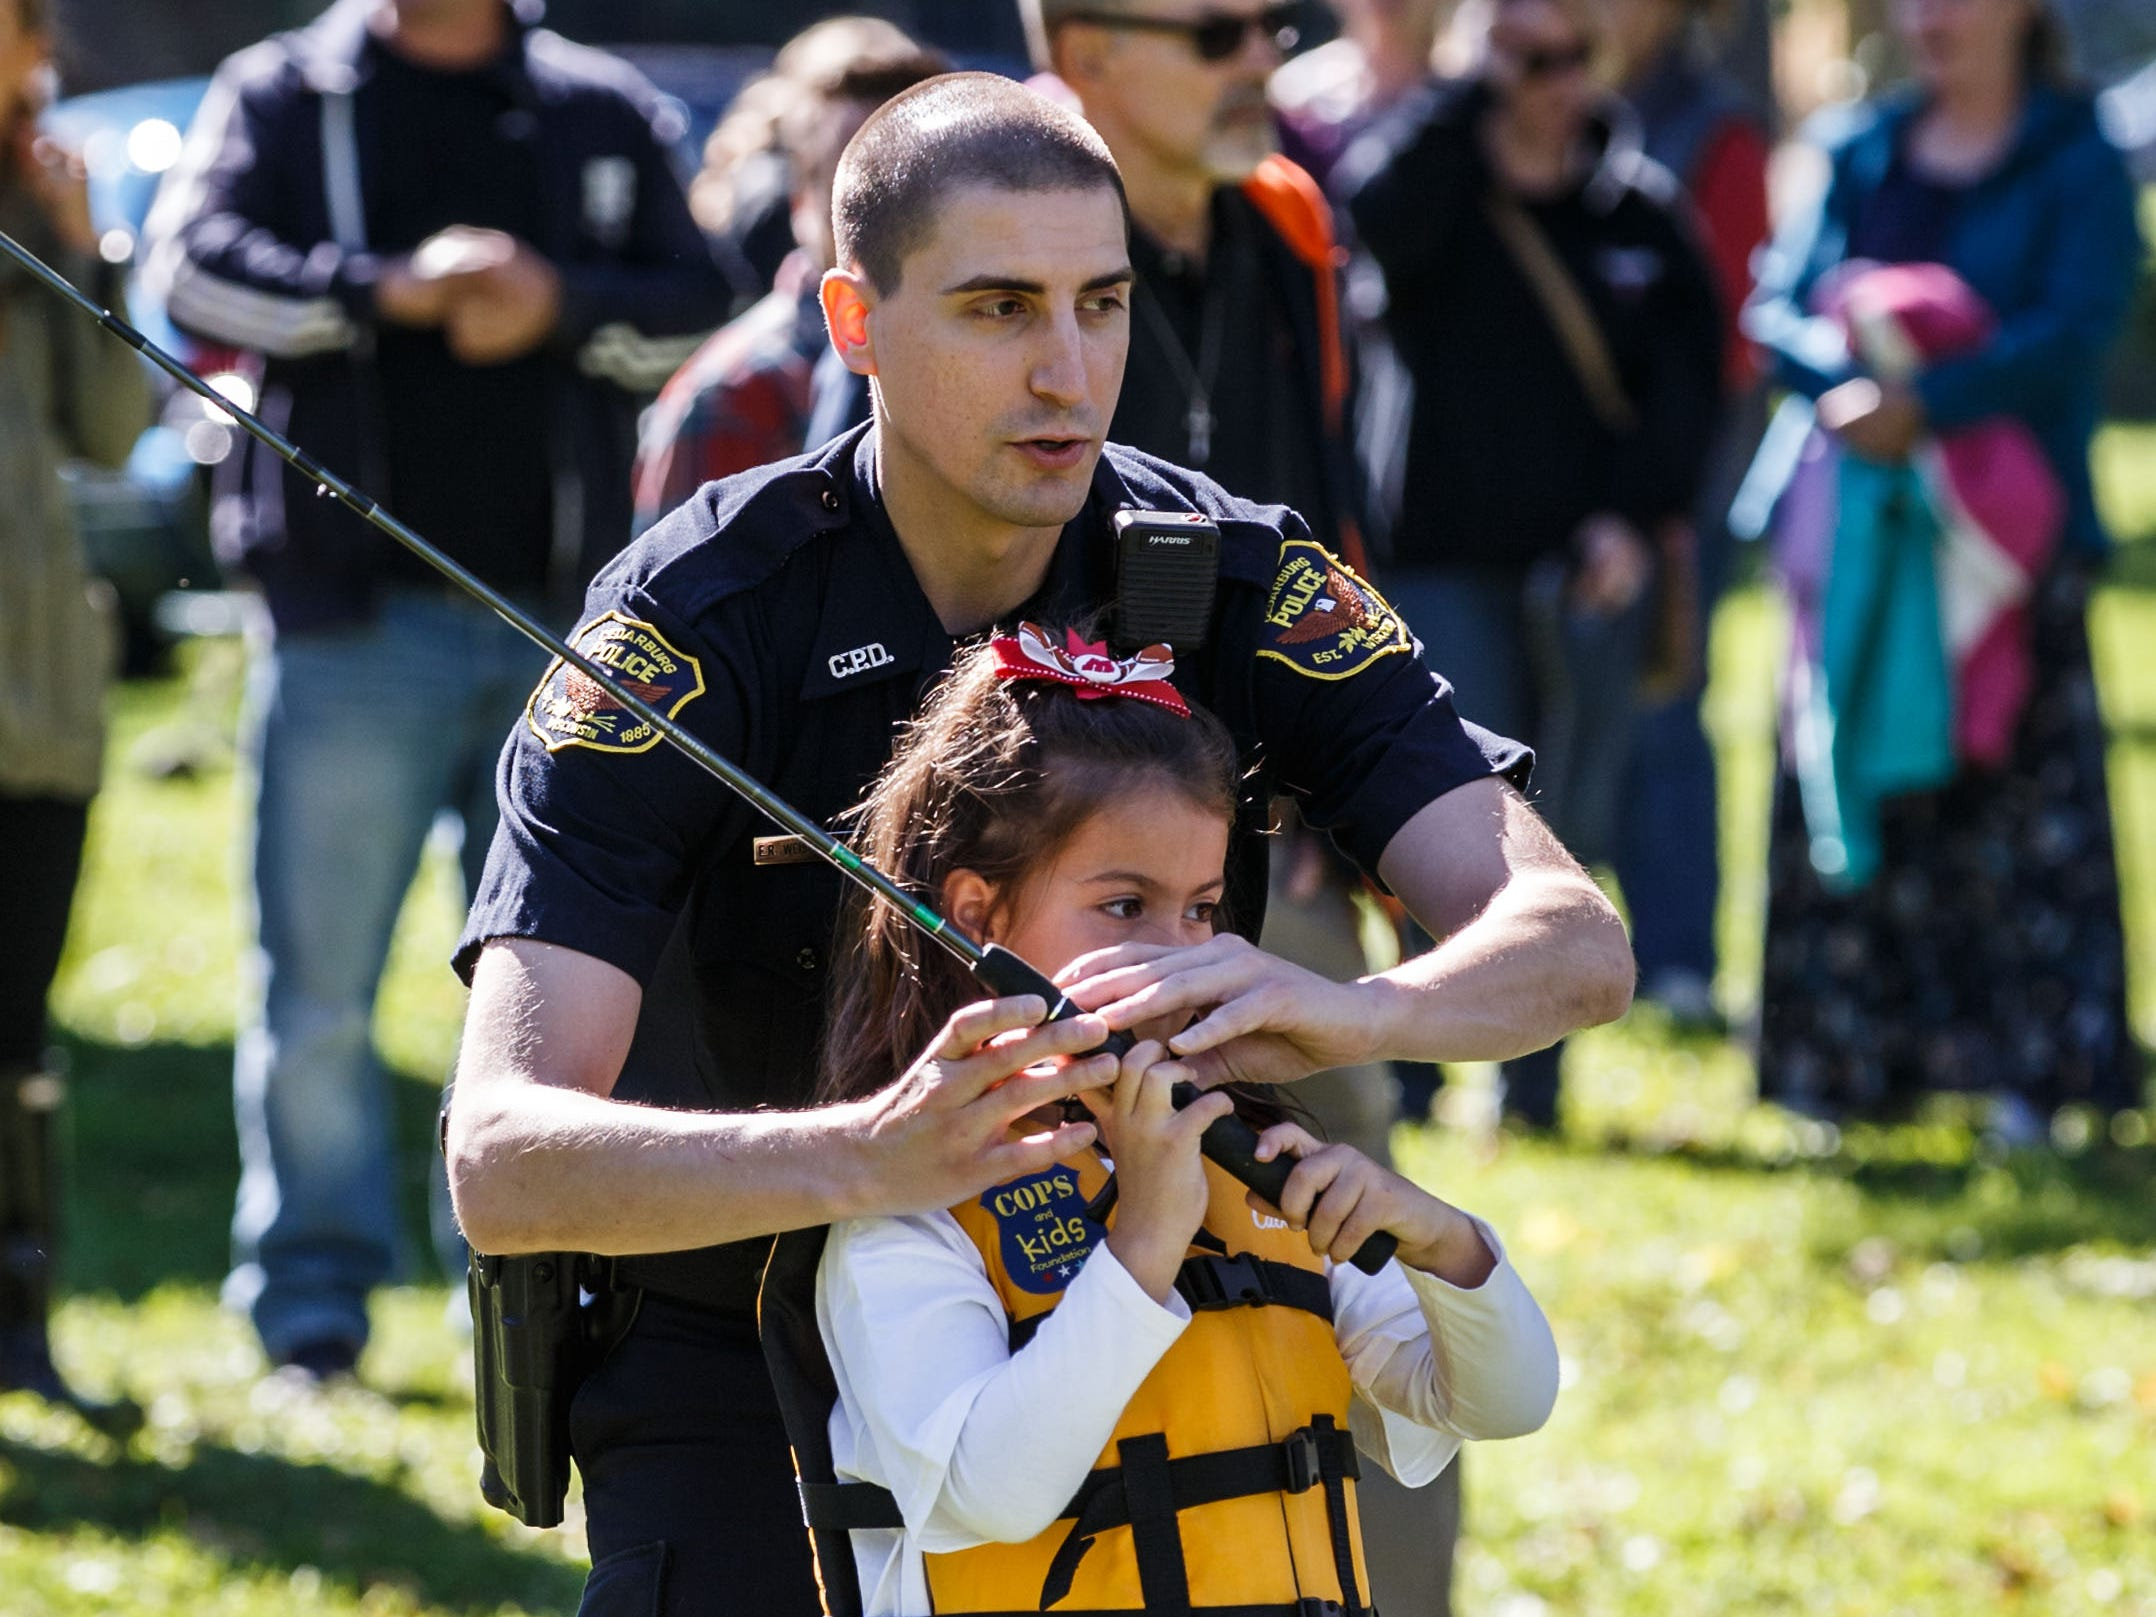 Cedarburg Police Officer Eric Weisenberger helps a youngster with her casting technique during the inaugural Cops & Bobbers fishing event hosted by Cedarburg Police Department at Cedar Creek Park on Saturday, Sept. 22, 2018. The free catch-and-release event provides children a fun opportunity to interact with law enforcement officers while learning fishing techniques and water safety.